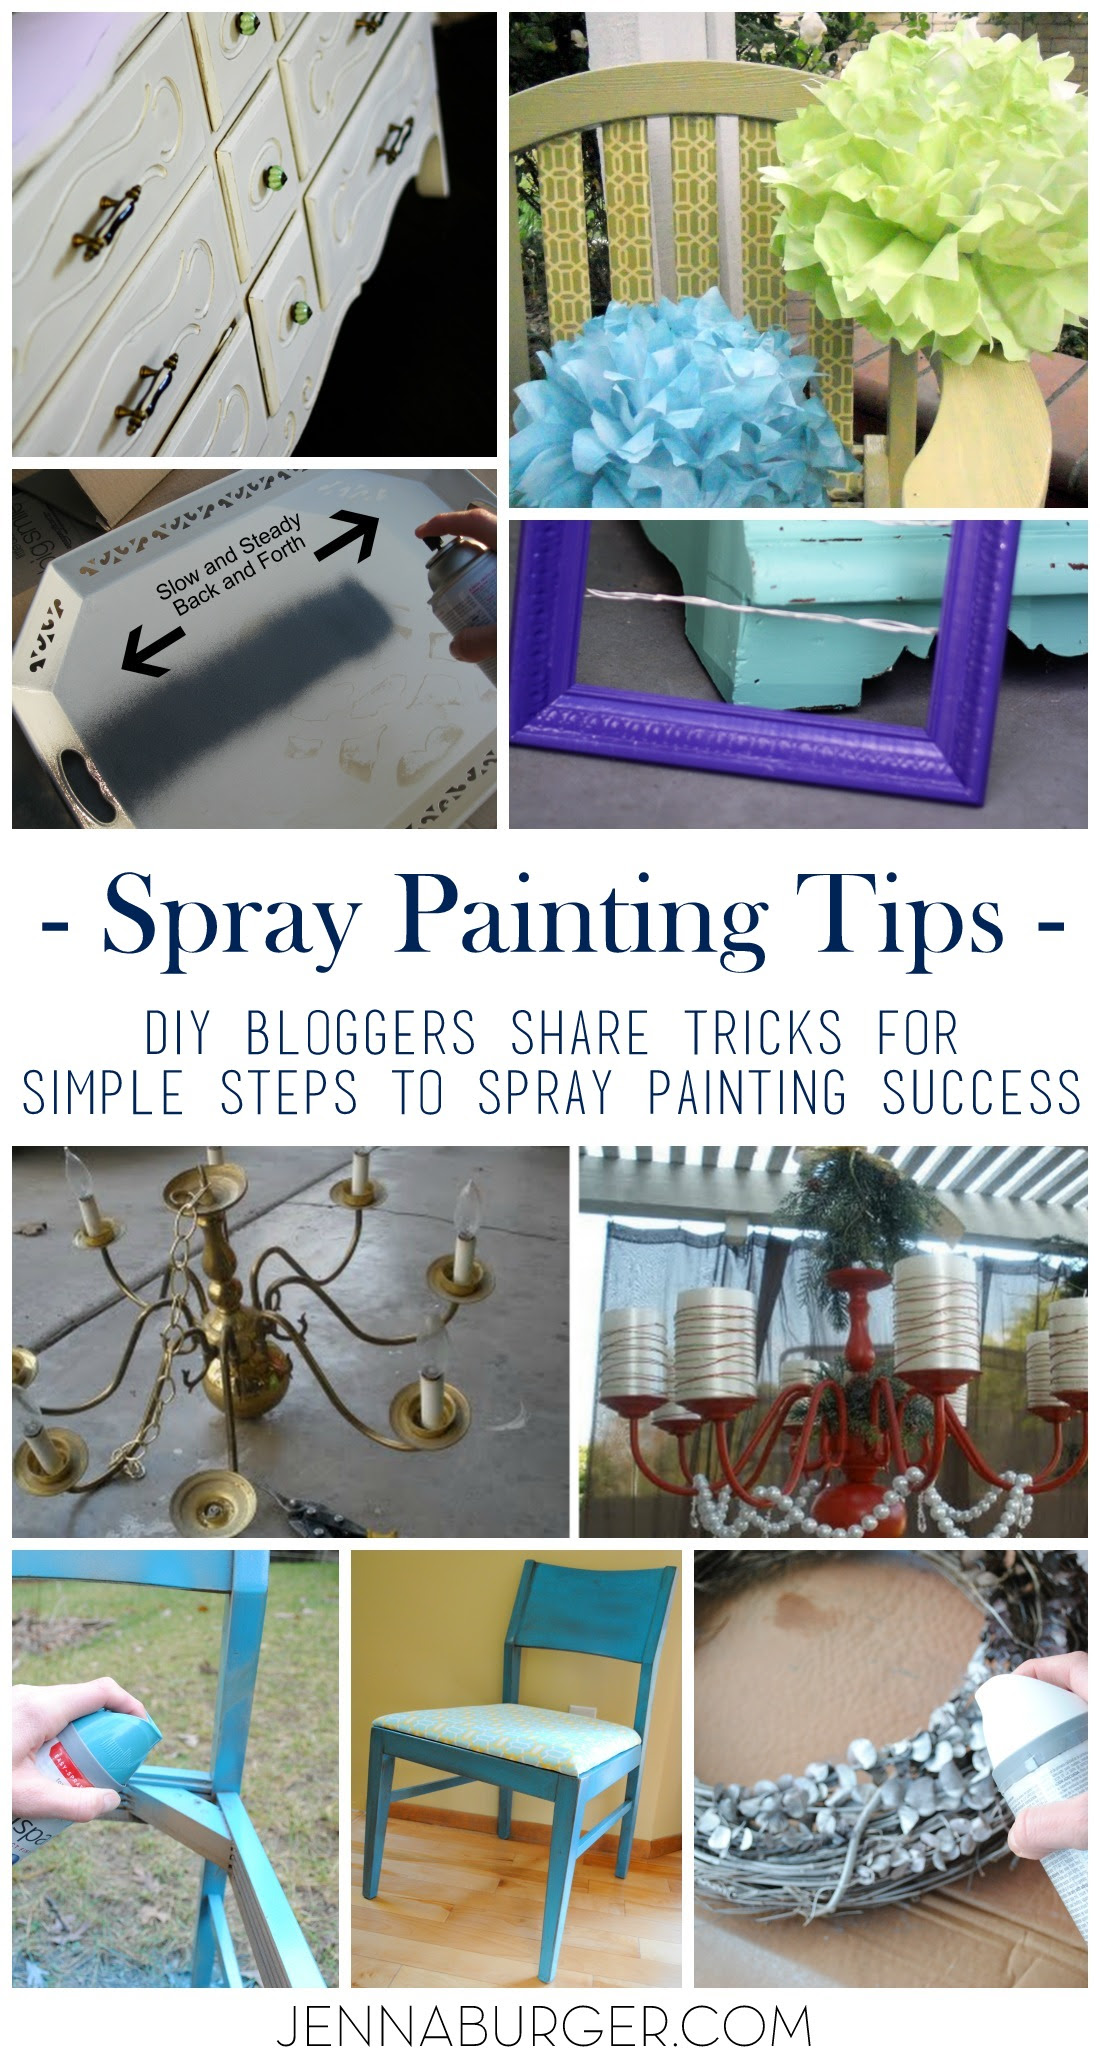 Simple Steps to Spray Painting Success The Pros Give their Advice